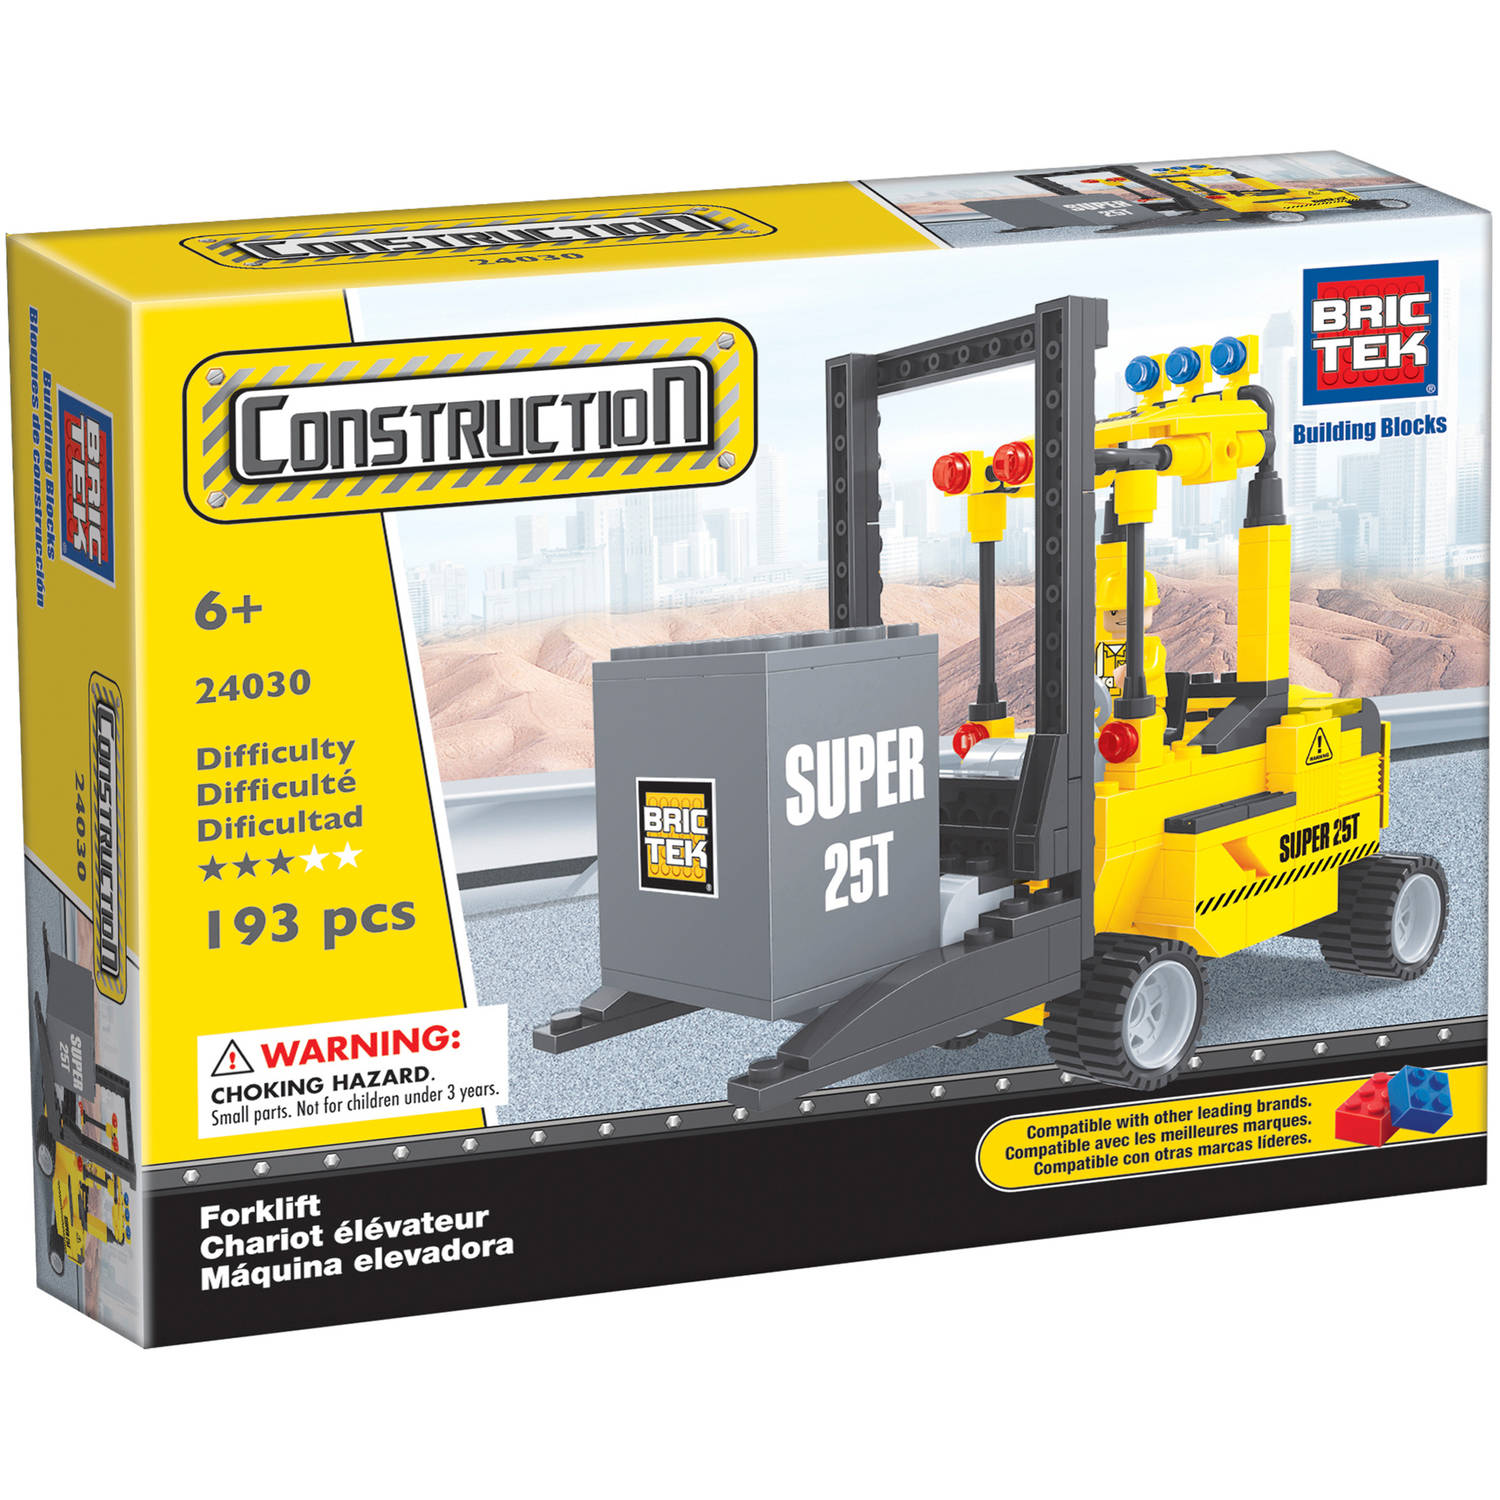 Construction Forklift